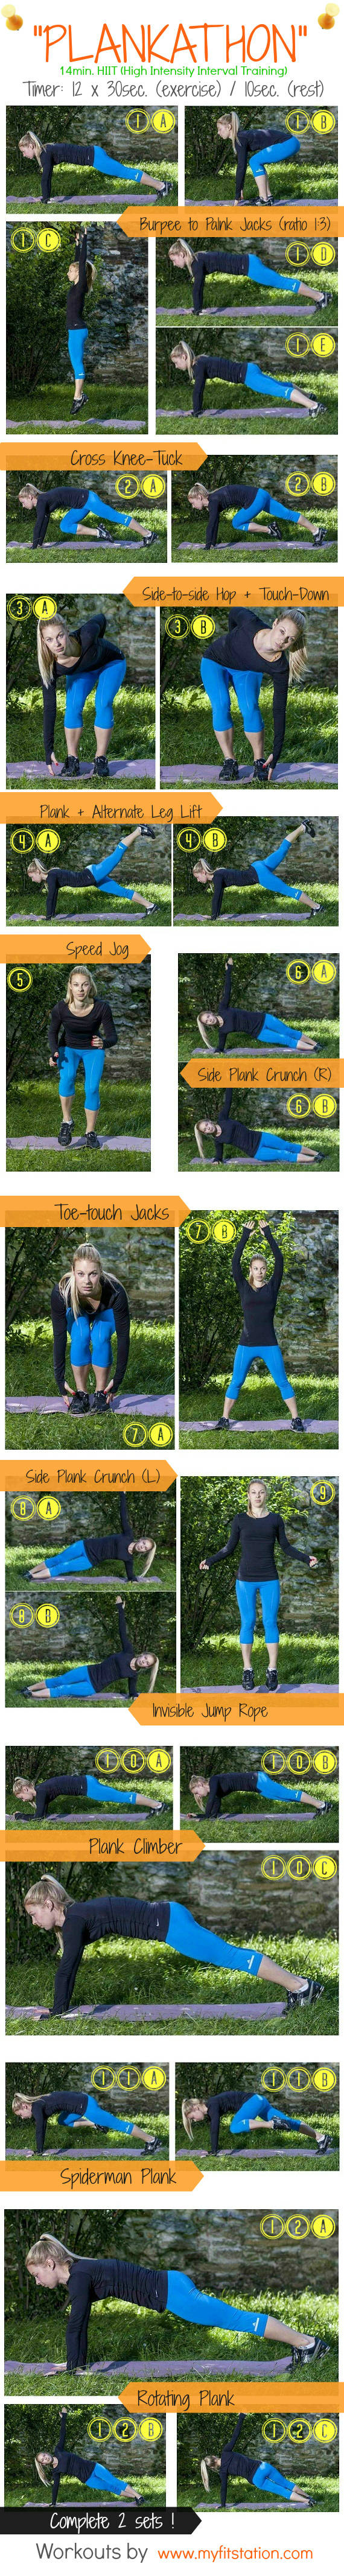 Plankathon HIIT workout infographic